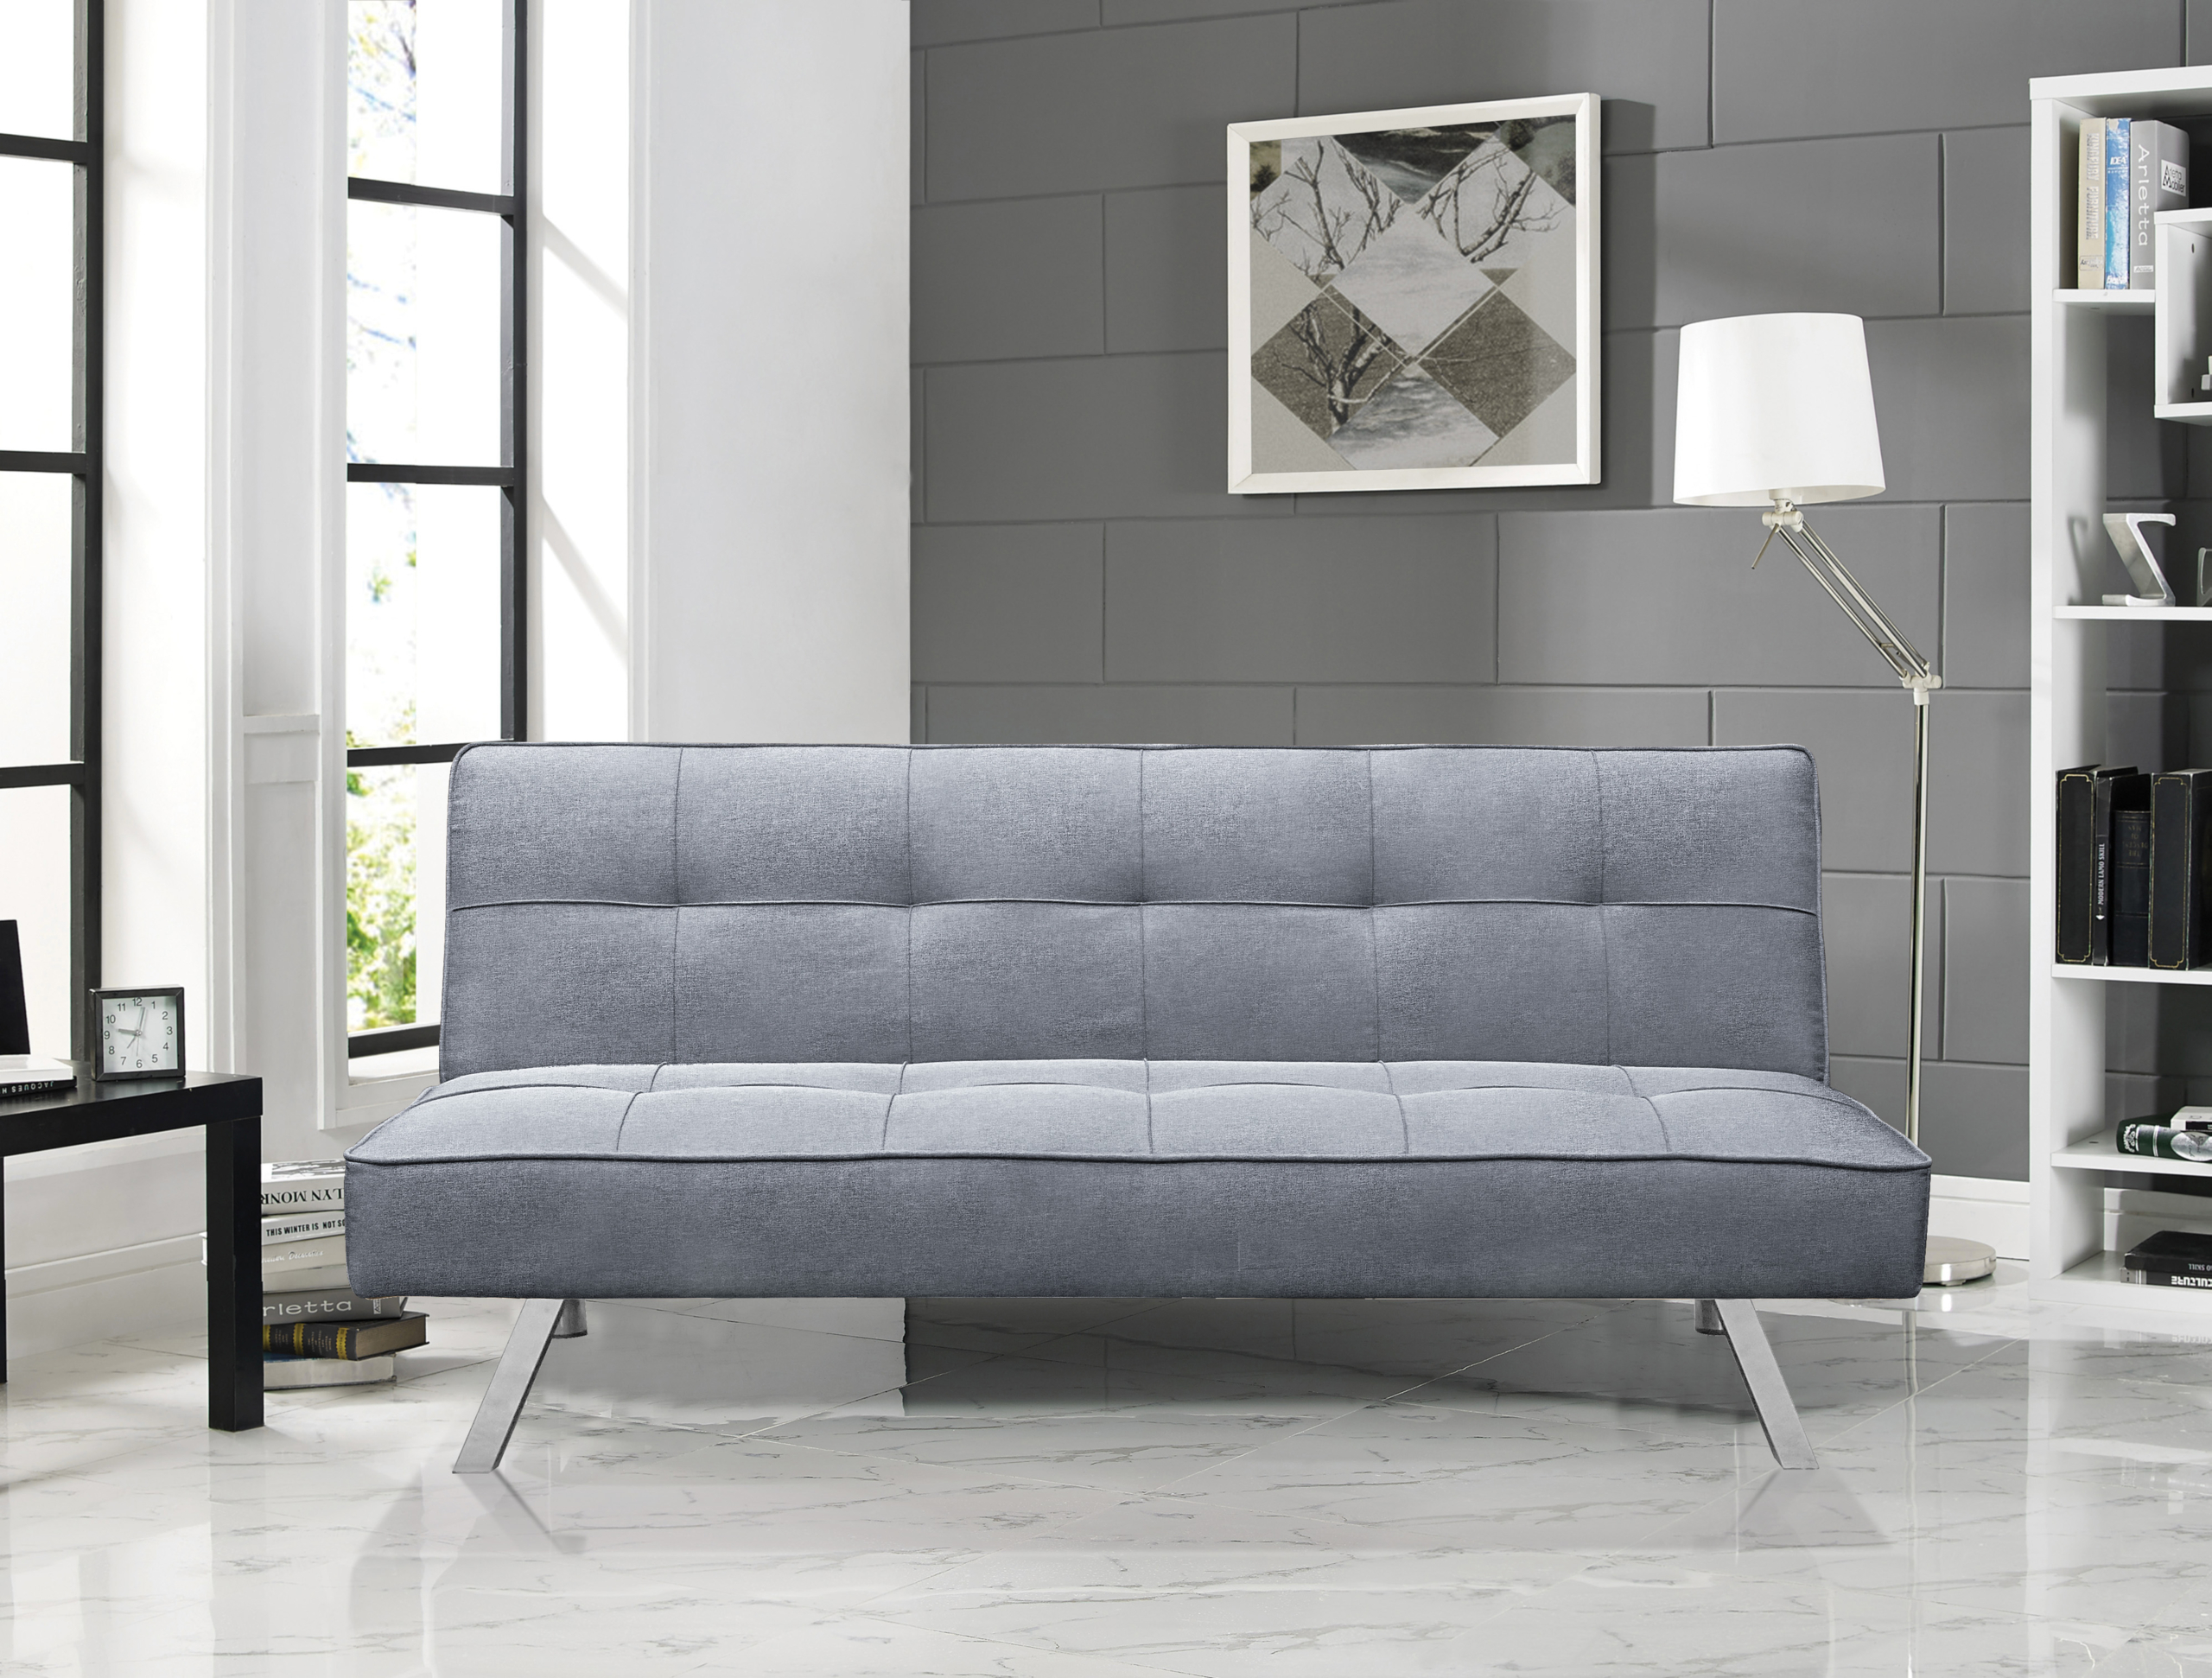 Sofa bed modern & Modern Pull Out Sofa Bed - Foter